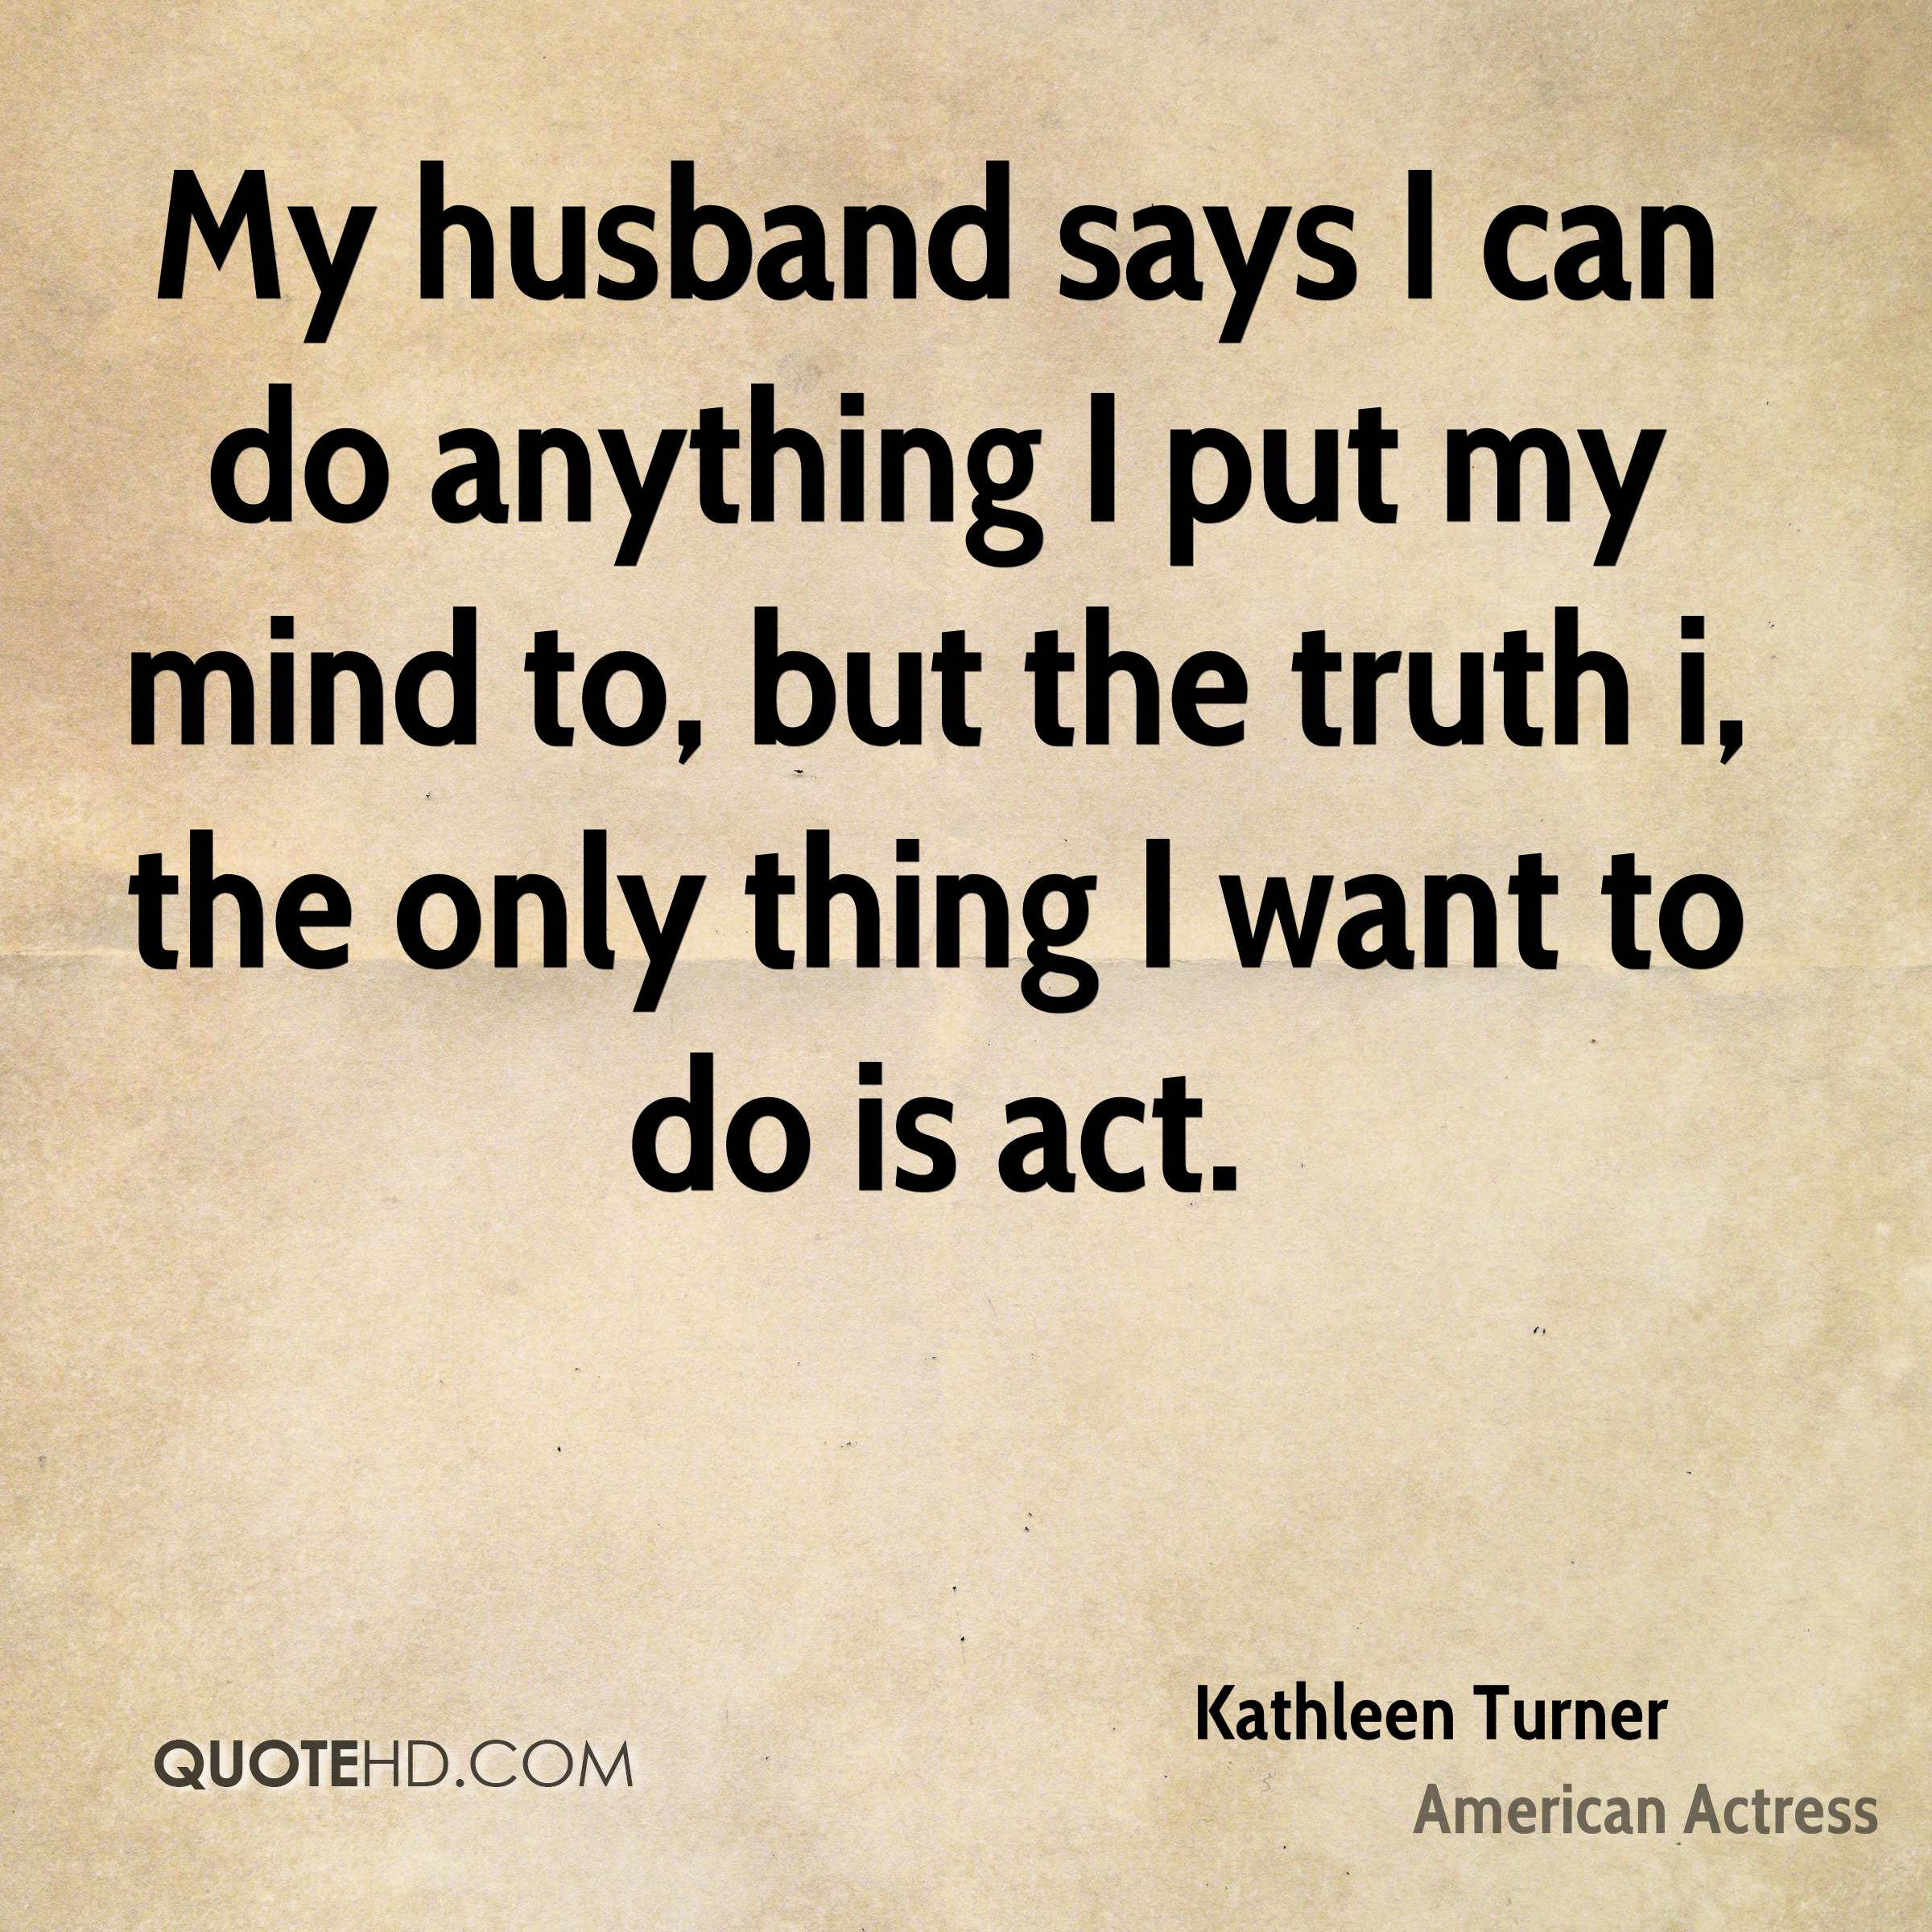 My husband says I can do anything I put my mind to, but the truth i, the only thing I want to do is act.